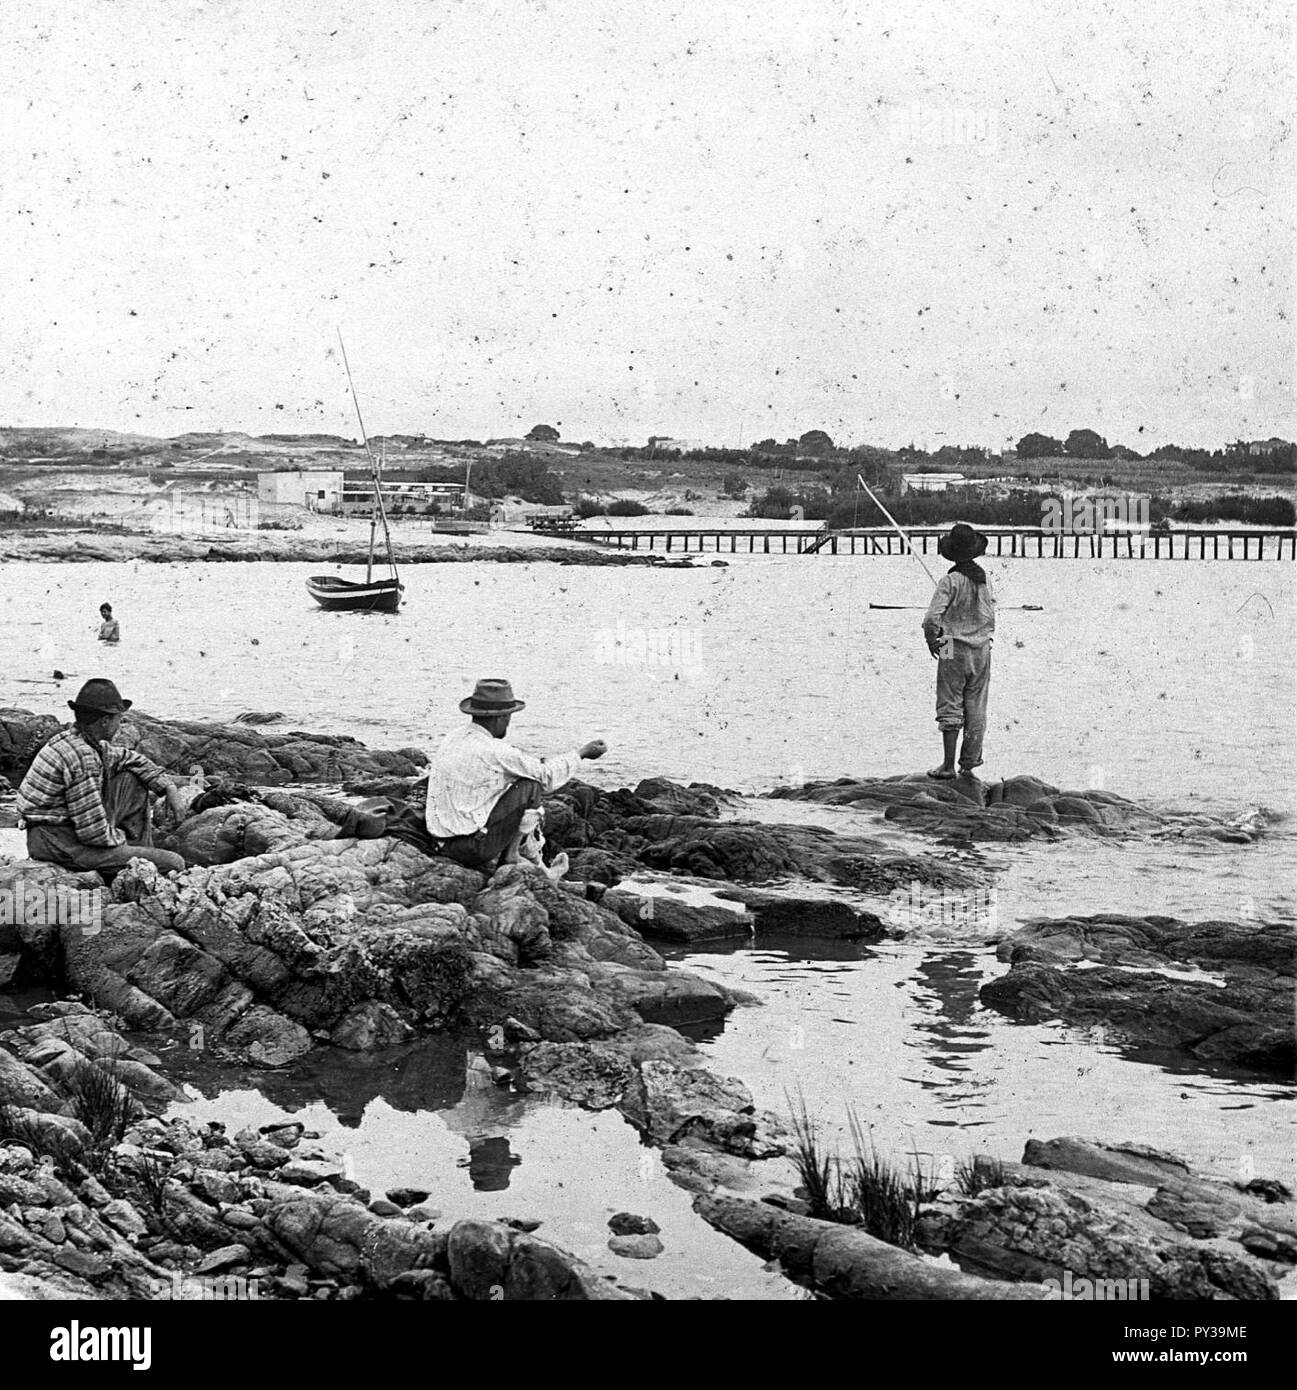 C29f283. Hombres pescando. Puertito del Buceo. Stock Photo